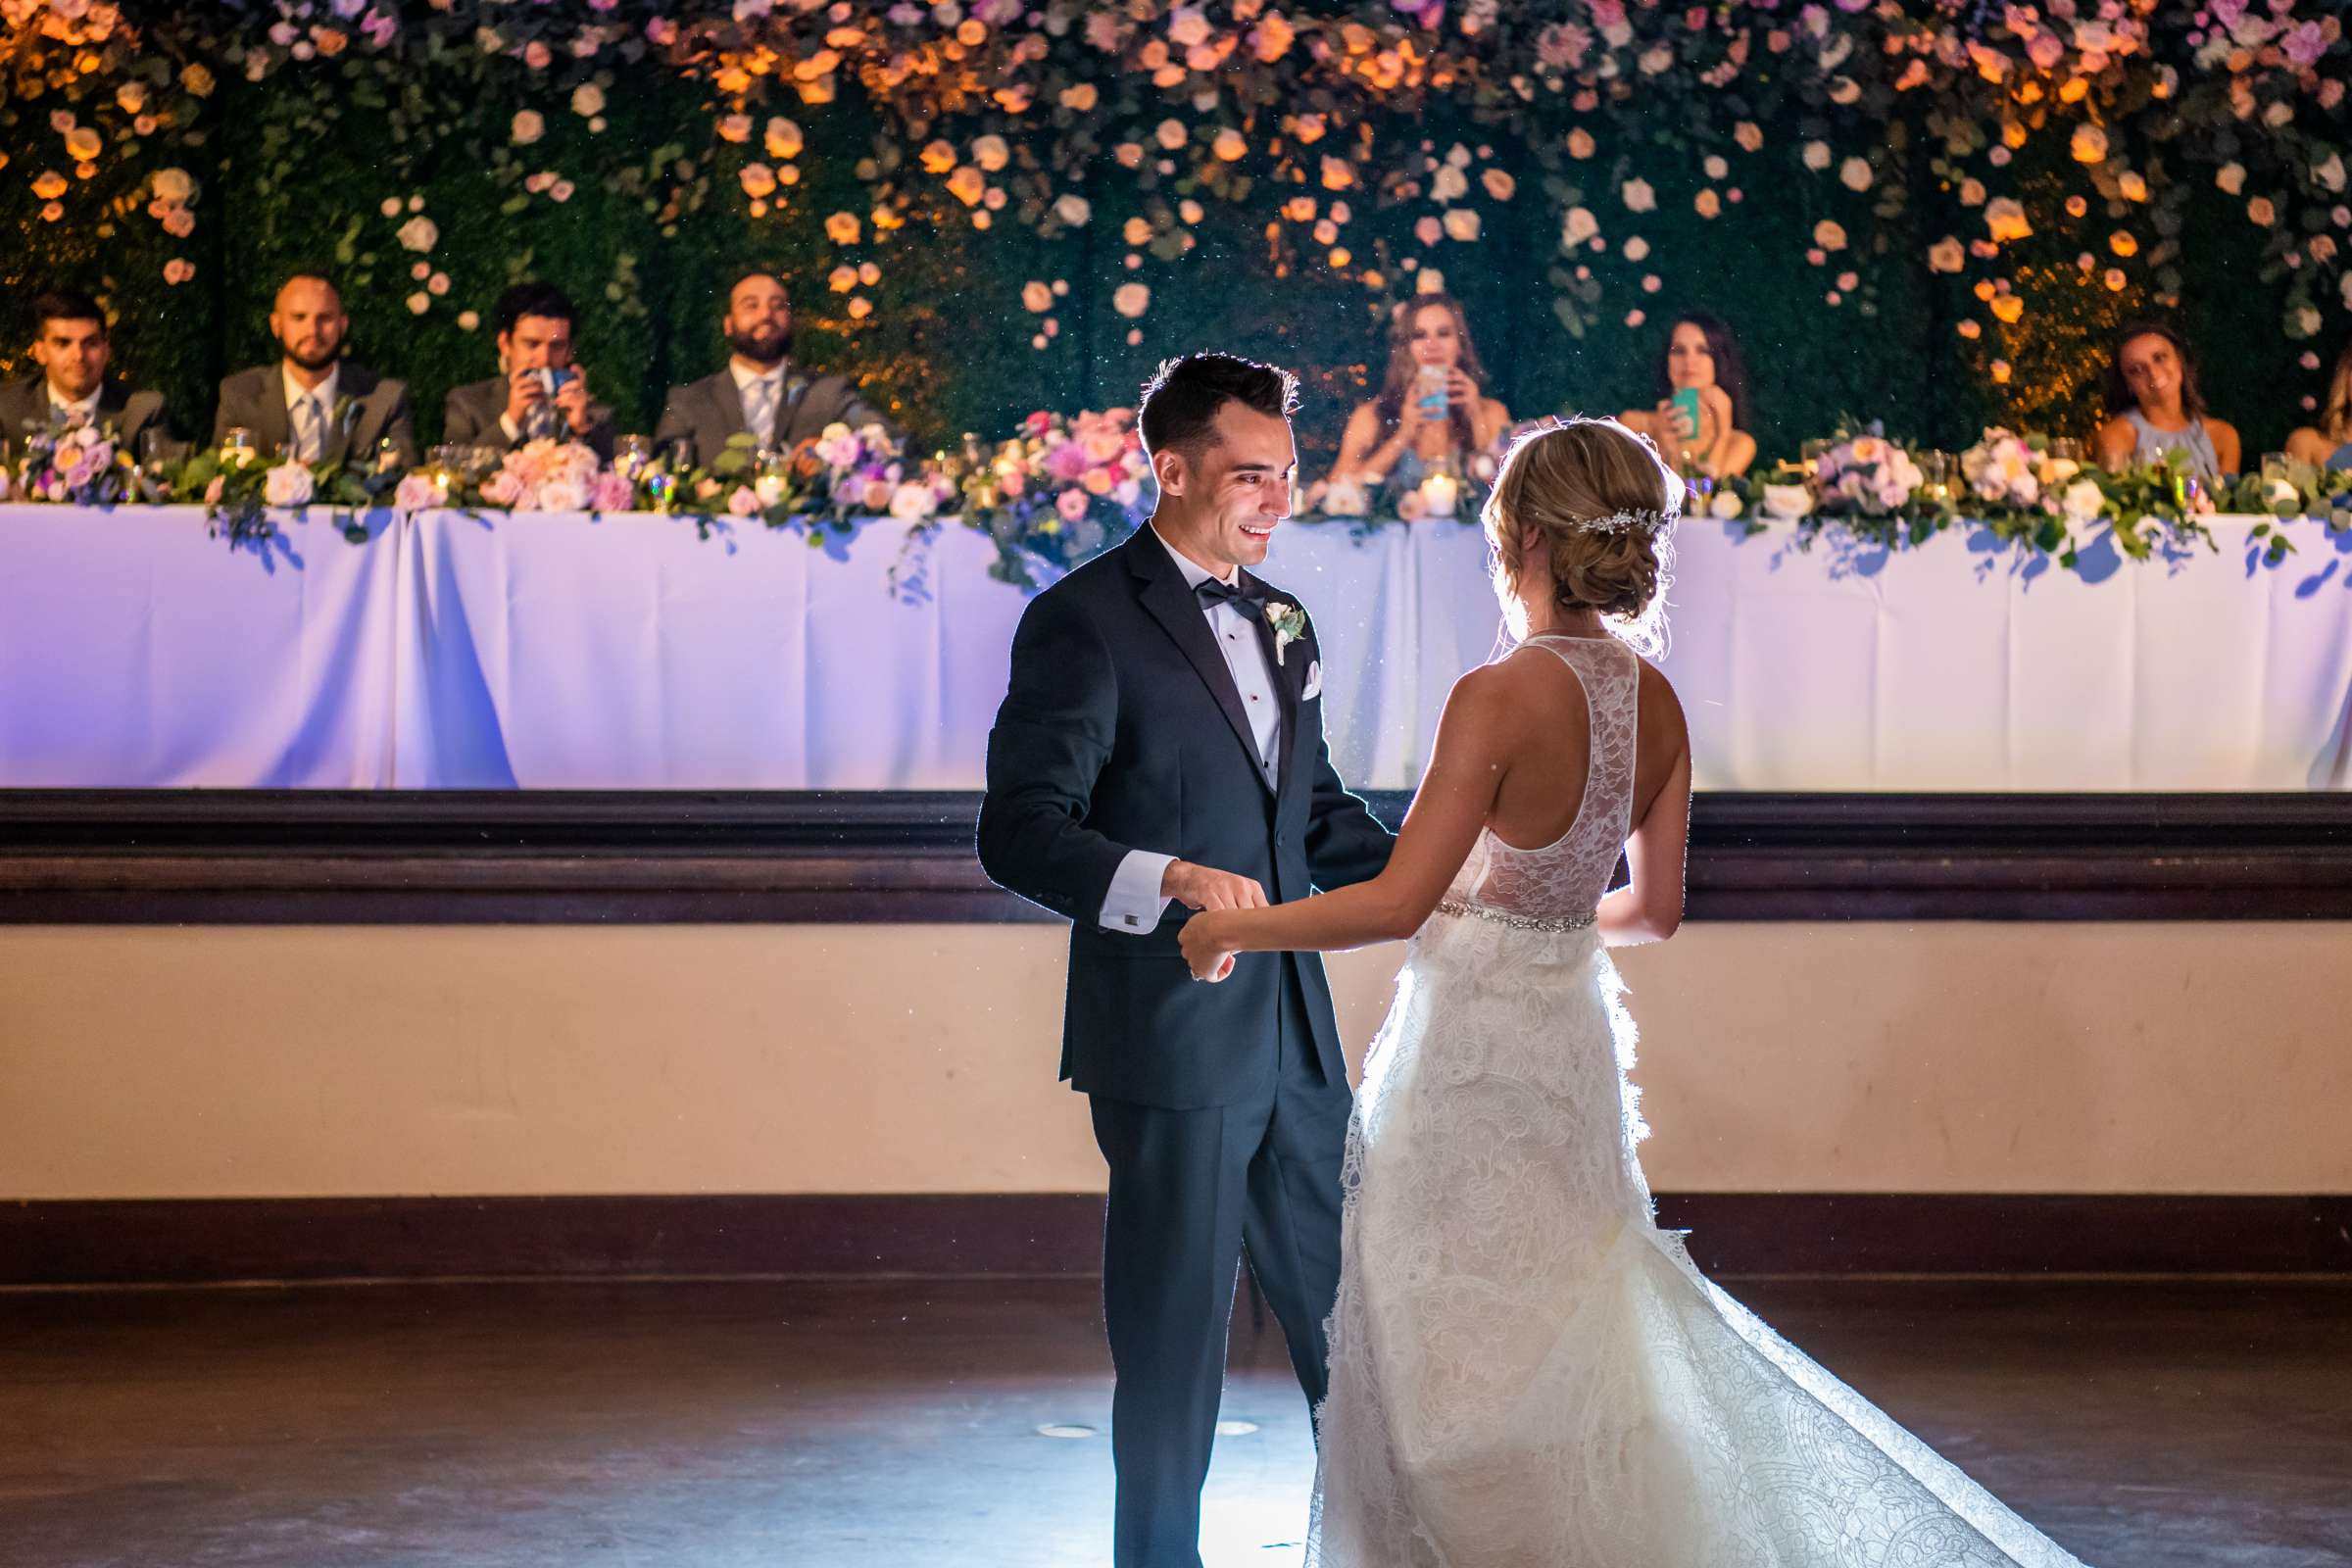 The Prado Wedding coordinated by Bliss Events, Sara and Marvin Wedding Photo #559625 by True Photography